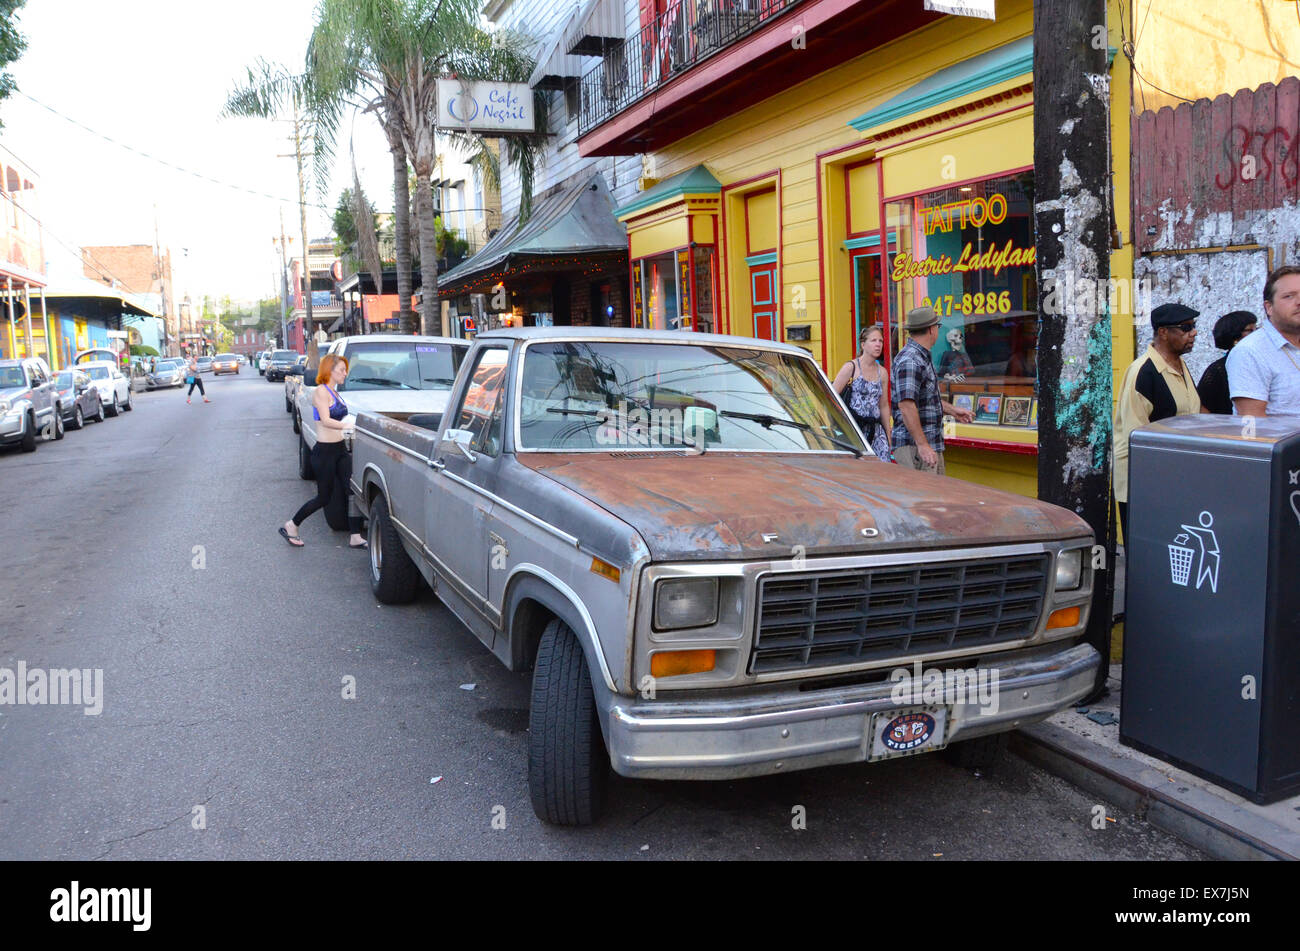 rusty ford new orleans frenchman street - Stock Image